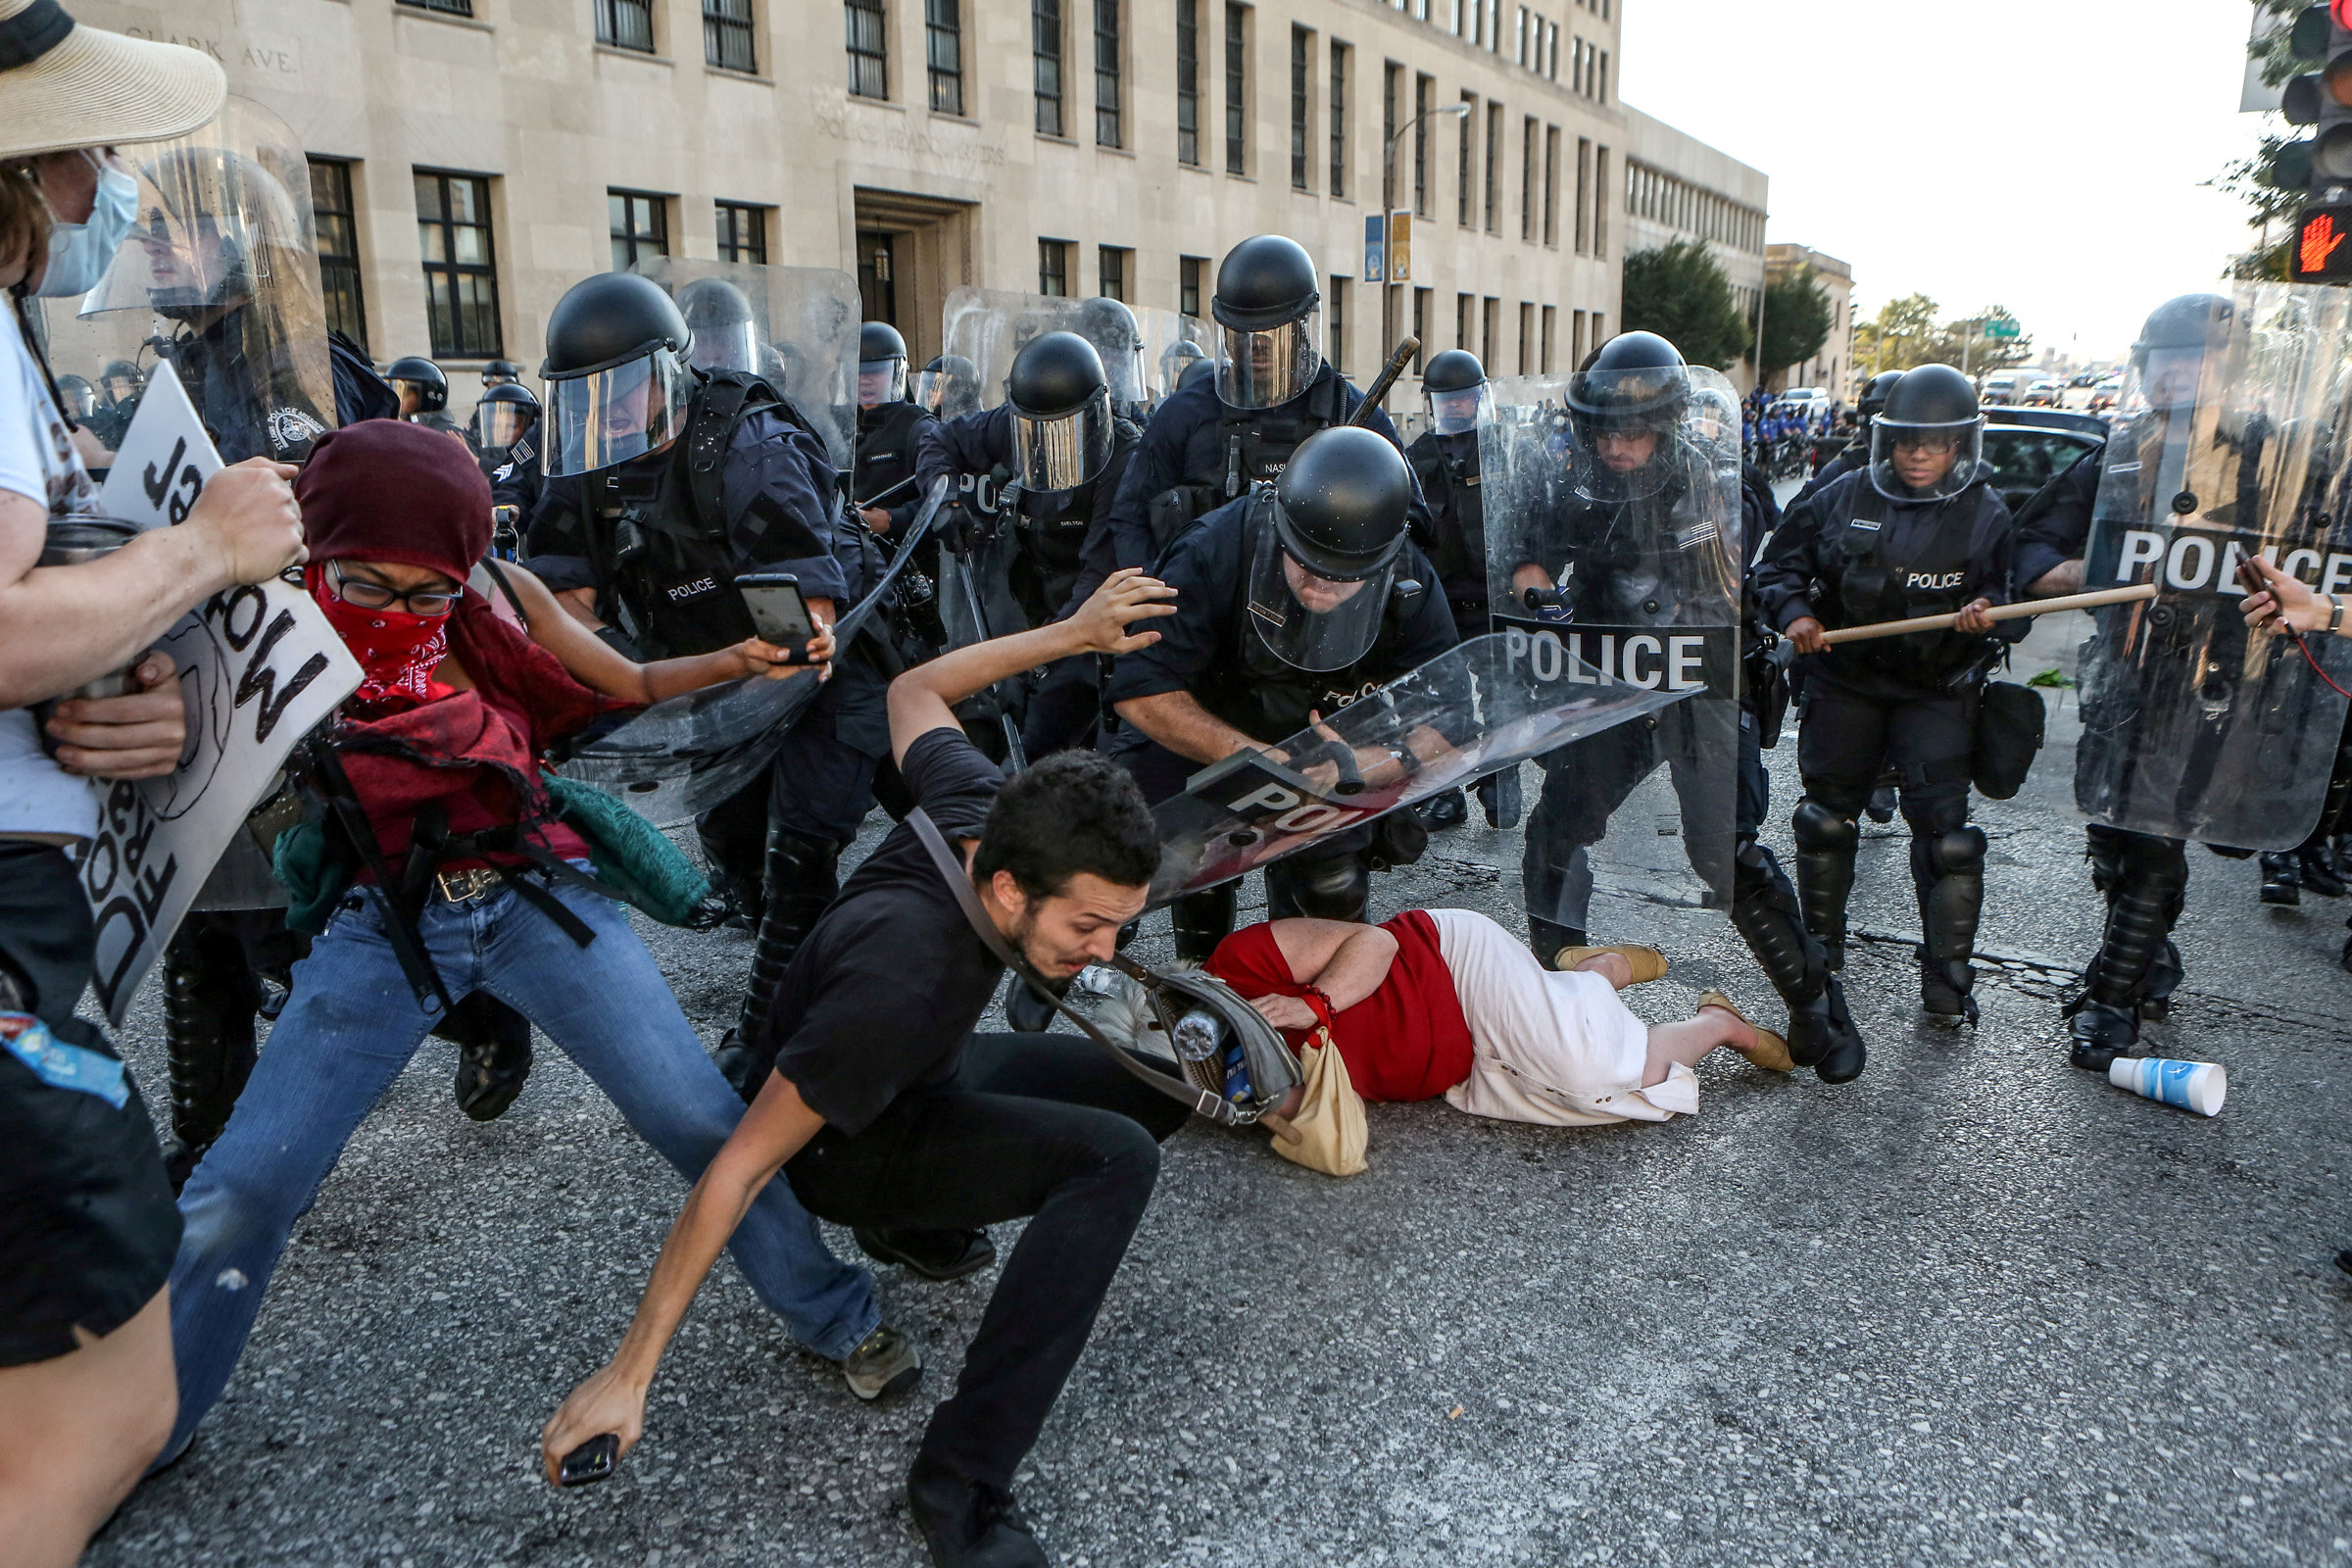 Federal judge limits St. Louis police conduct during protests